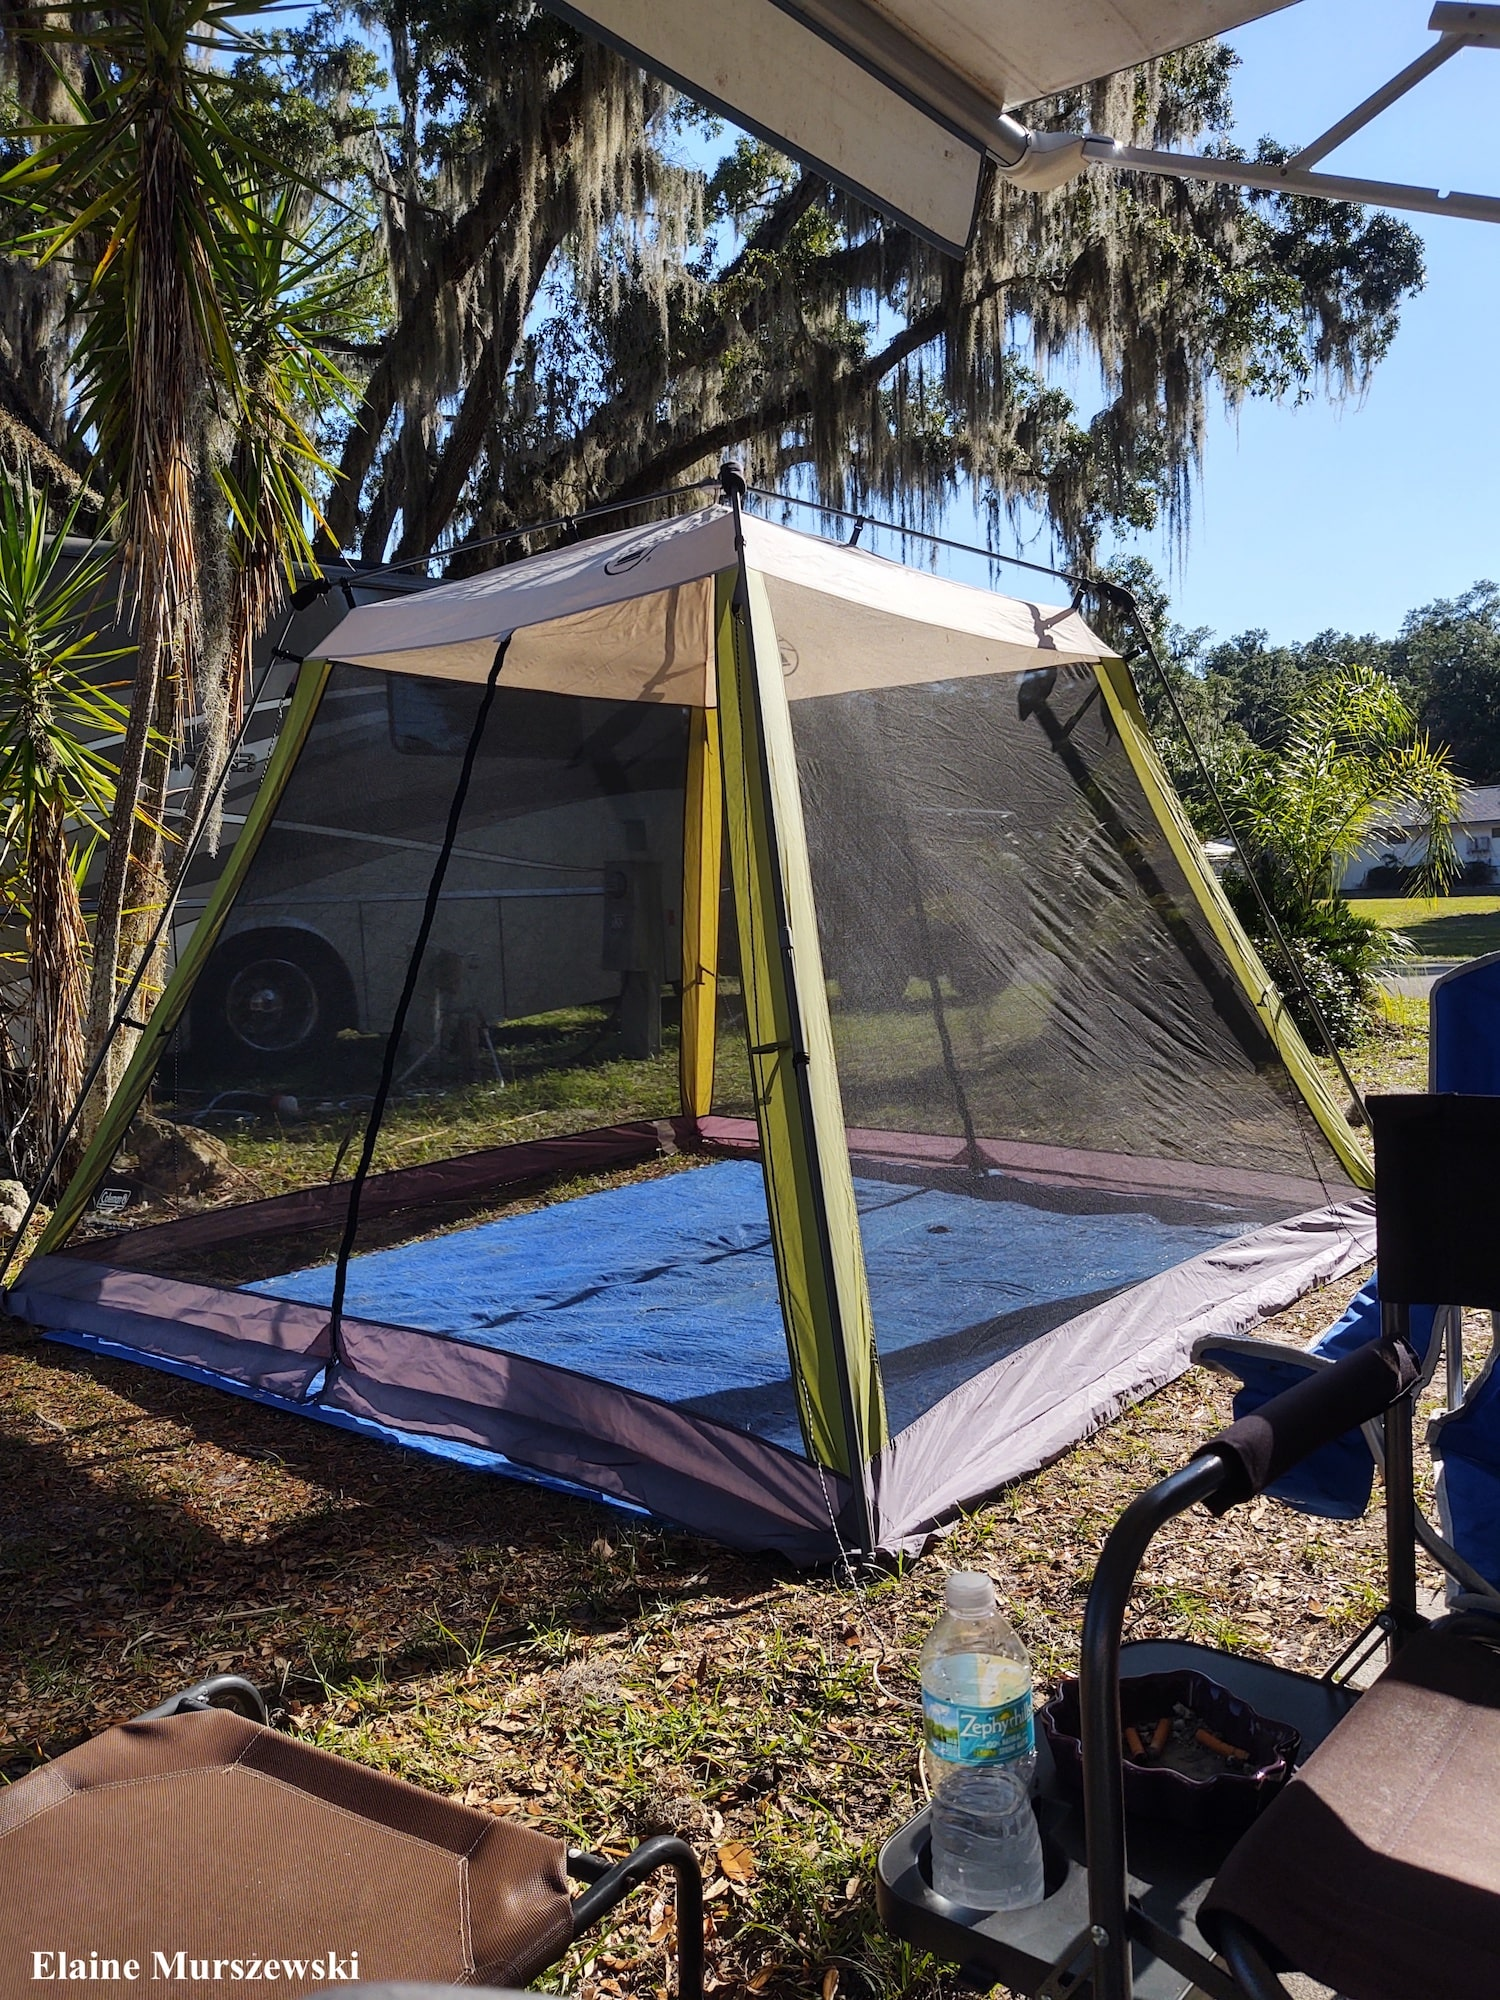 Screenhouse tent at RV campsite